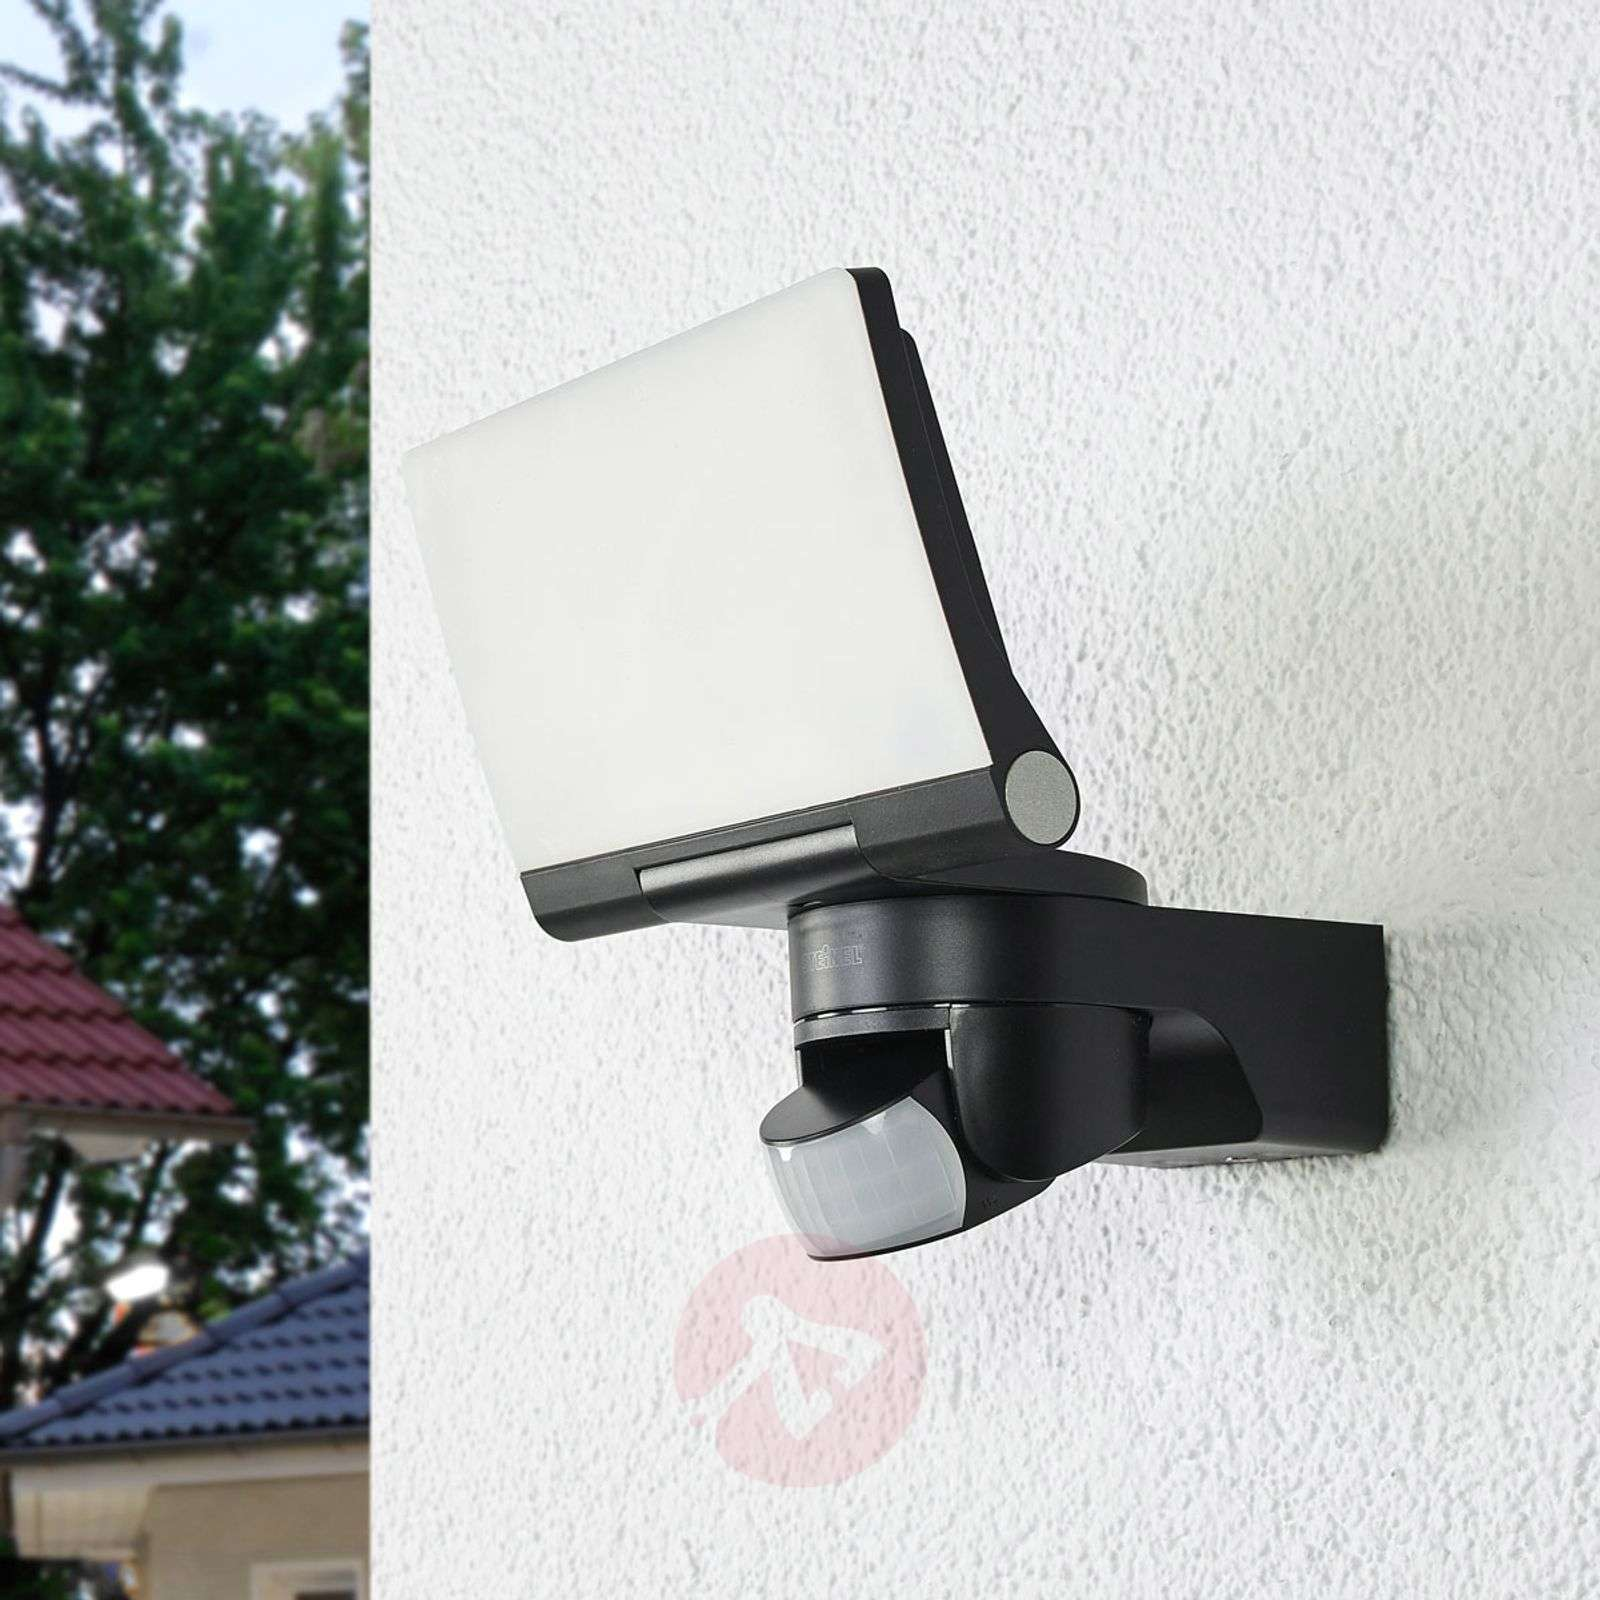 Black LED outdoor wall light XLED Home 2-8505693-01